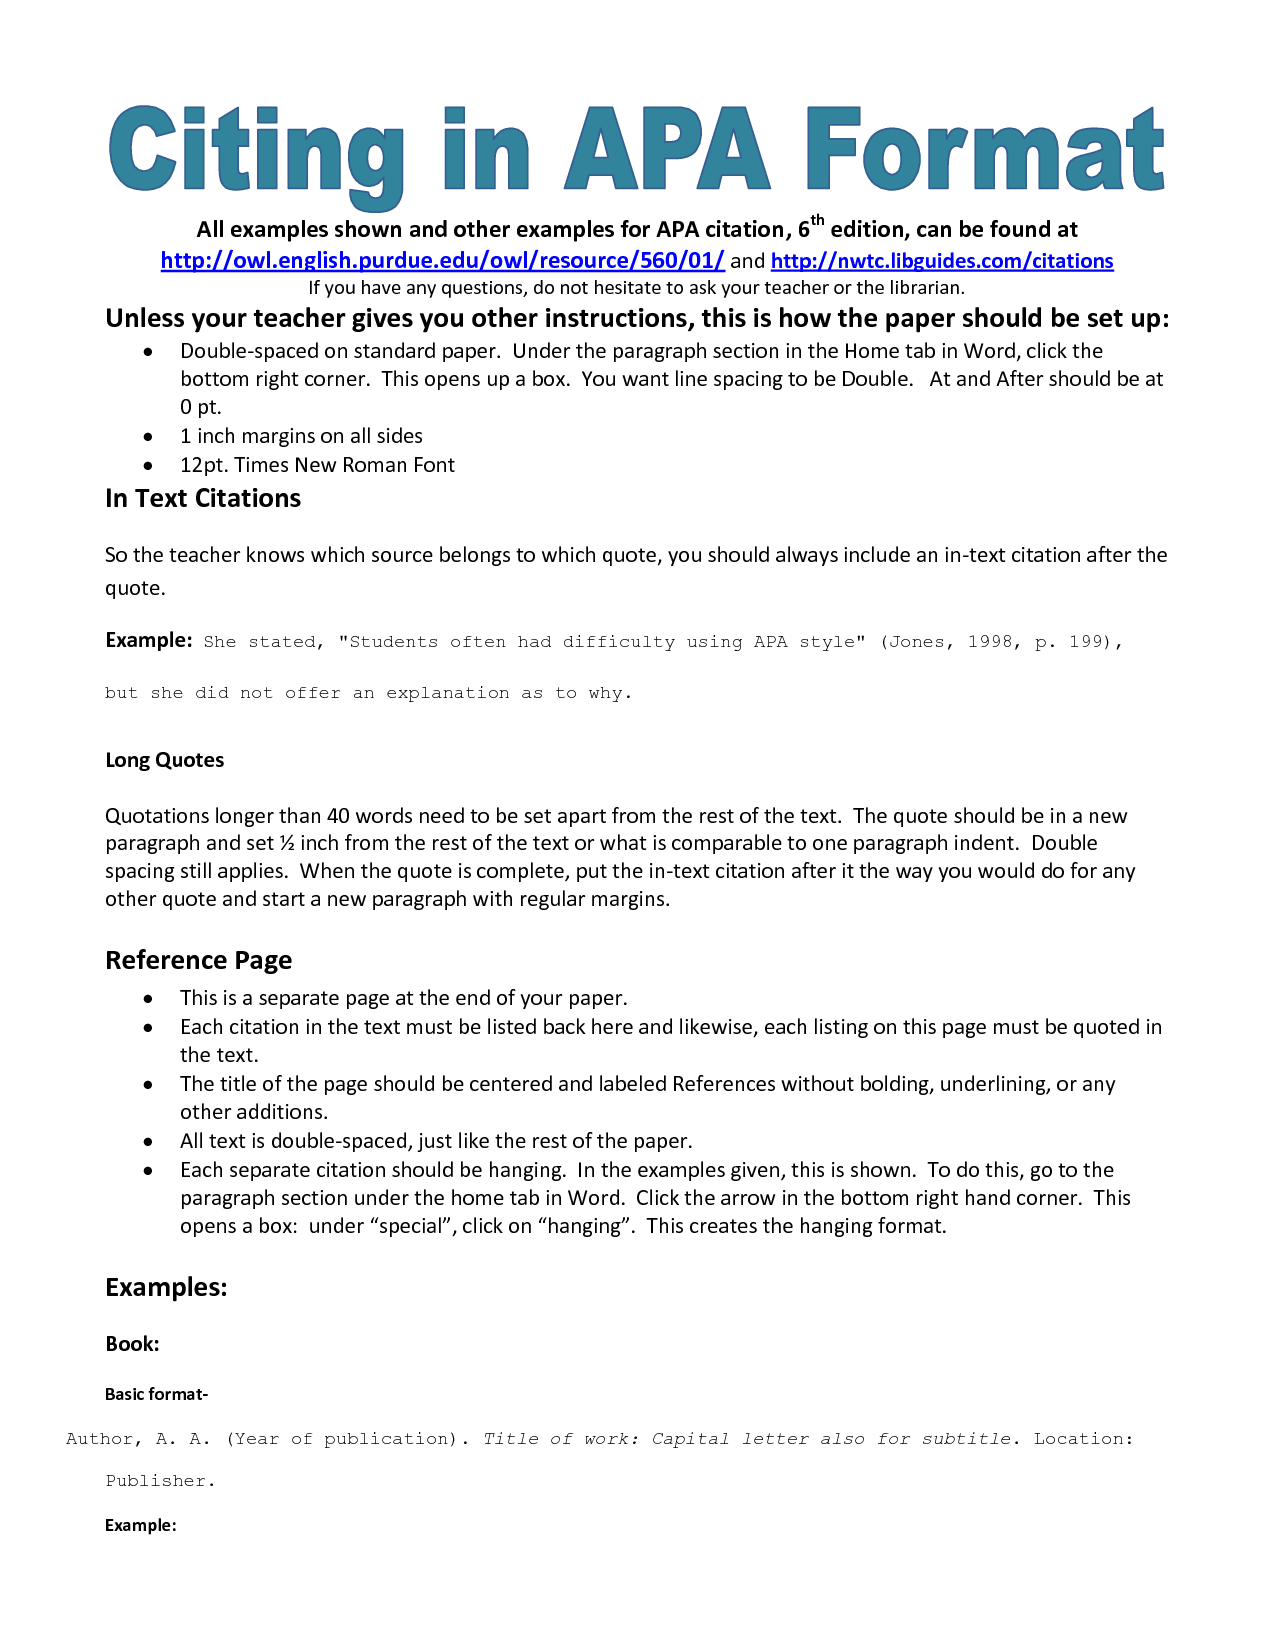 in essay citation mla citation in essay apa format citation in  also example of apa citation in paper apa citation handout writing example ofapa citation in paper